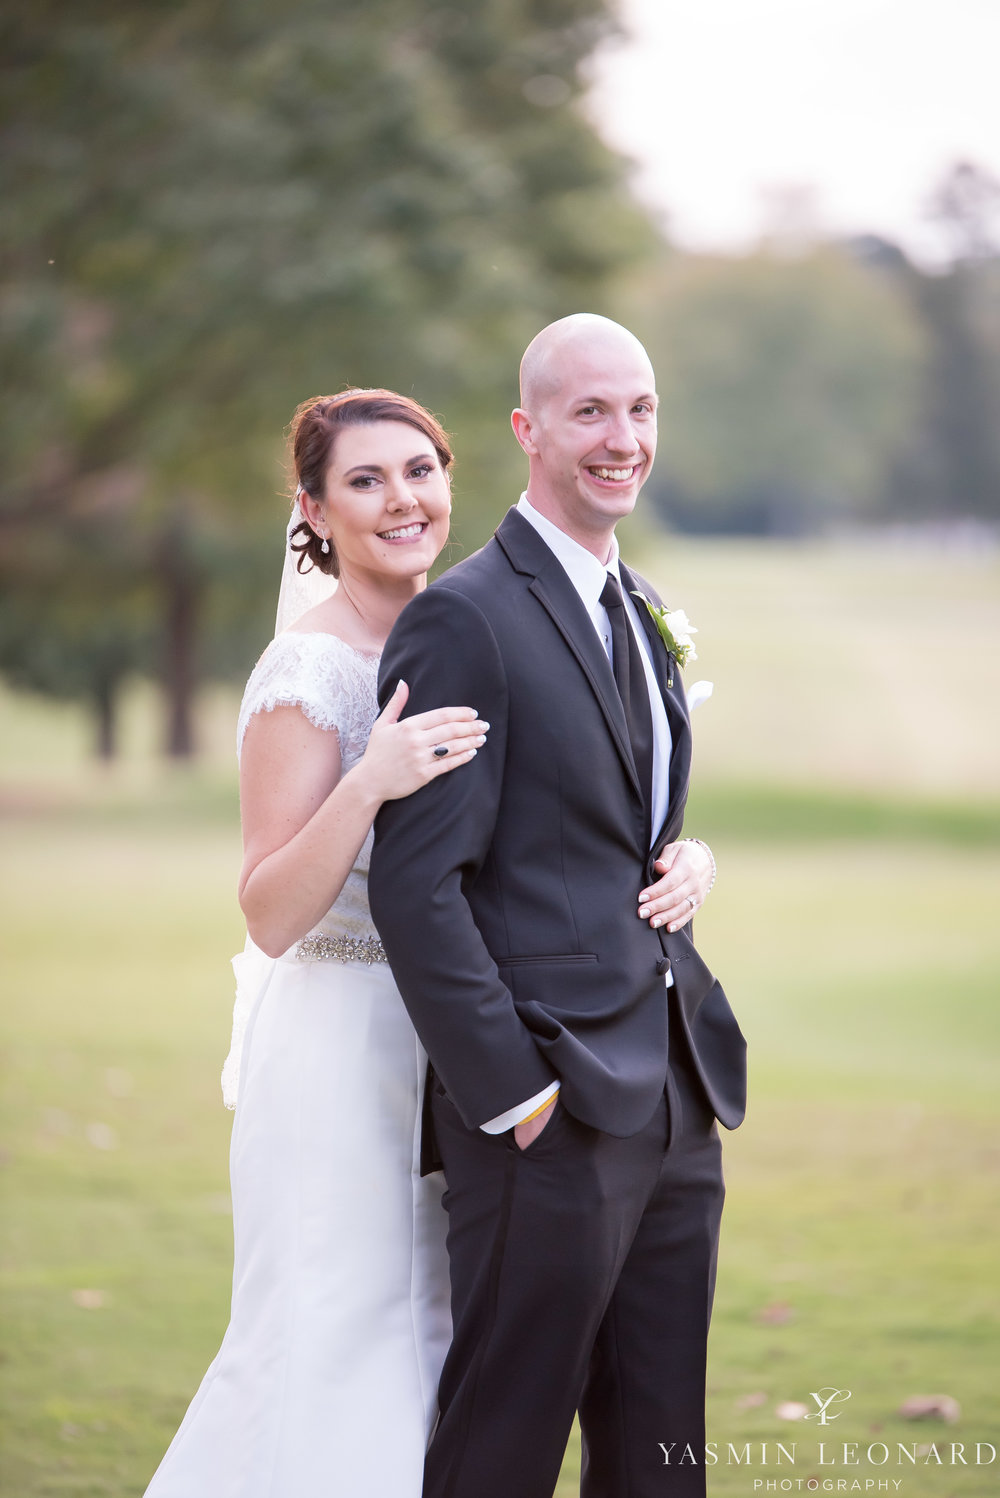 Forsyth Country Club - Winston Salem, NC - NC Wedding Photographer - Winston Salem Weddings - Winston Salem Wedding Venues-49.jpg